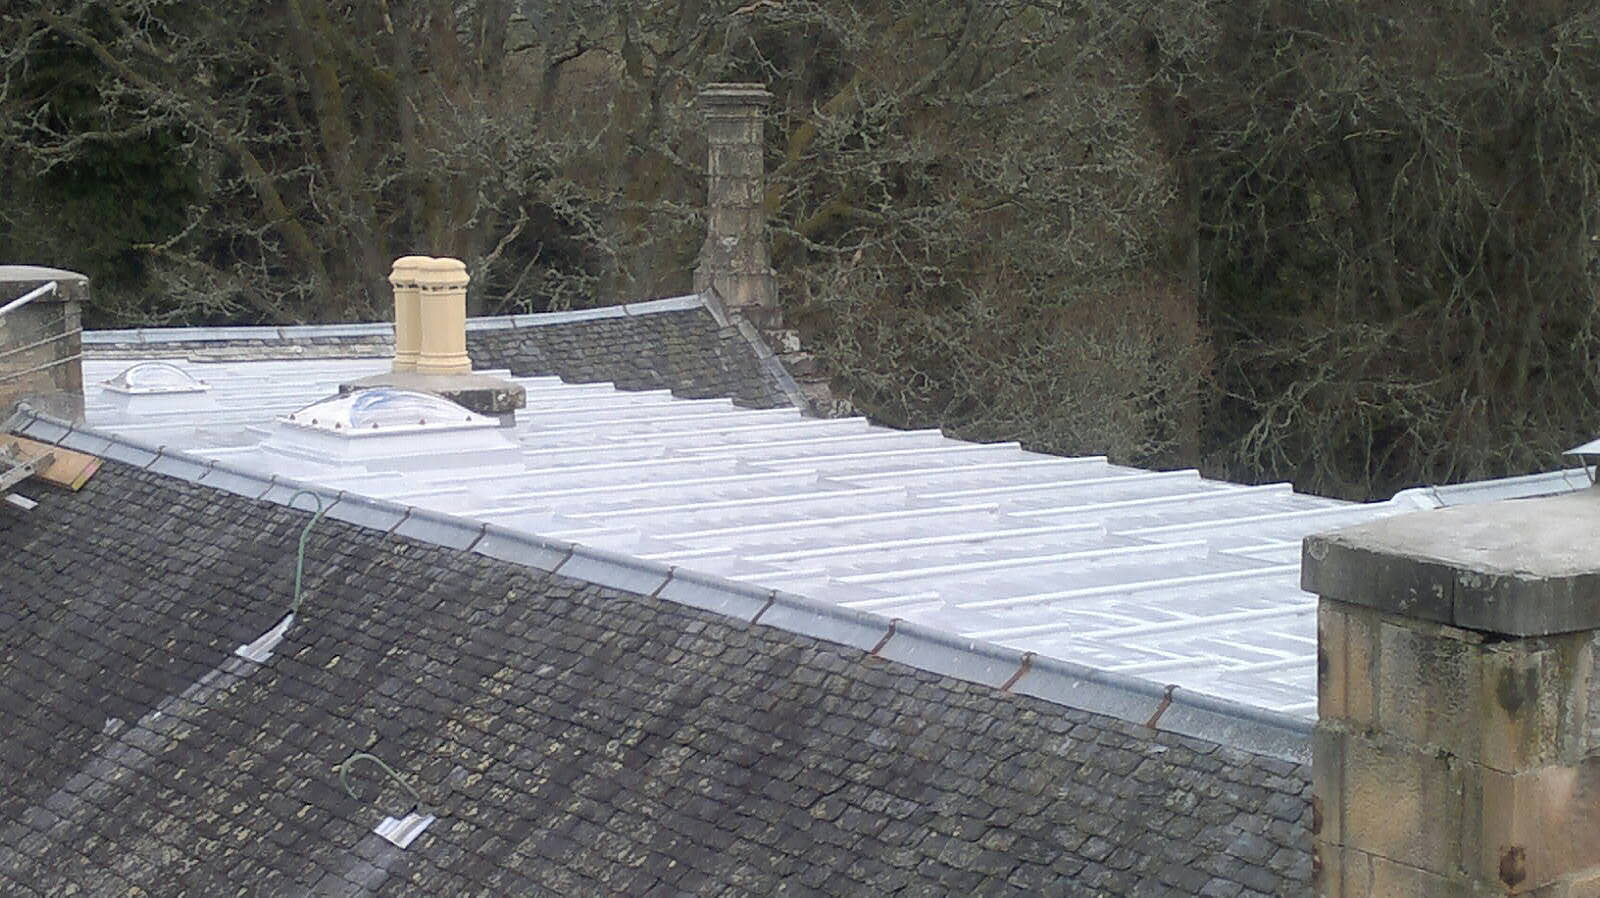 A completed flat roof